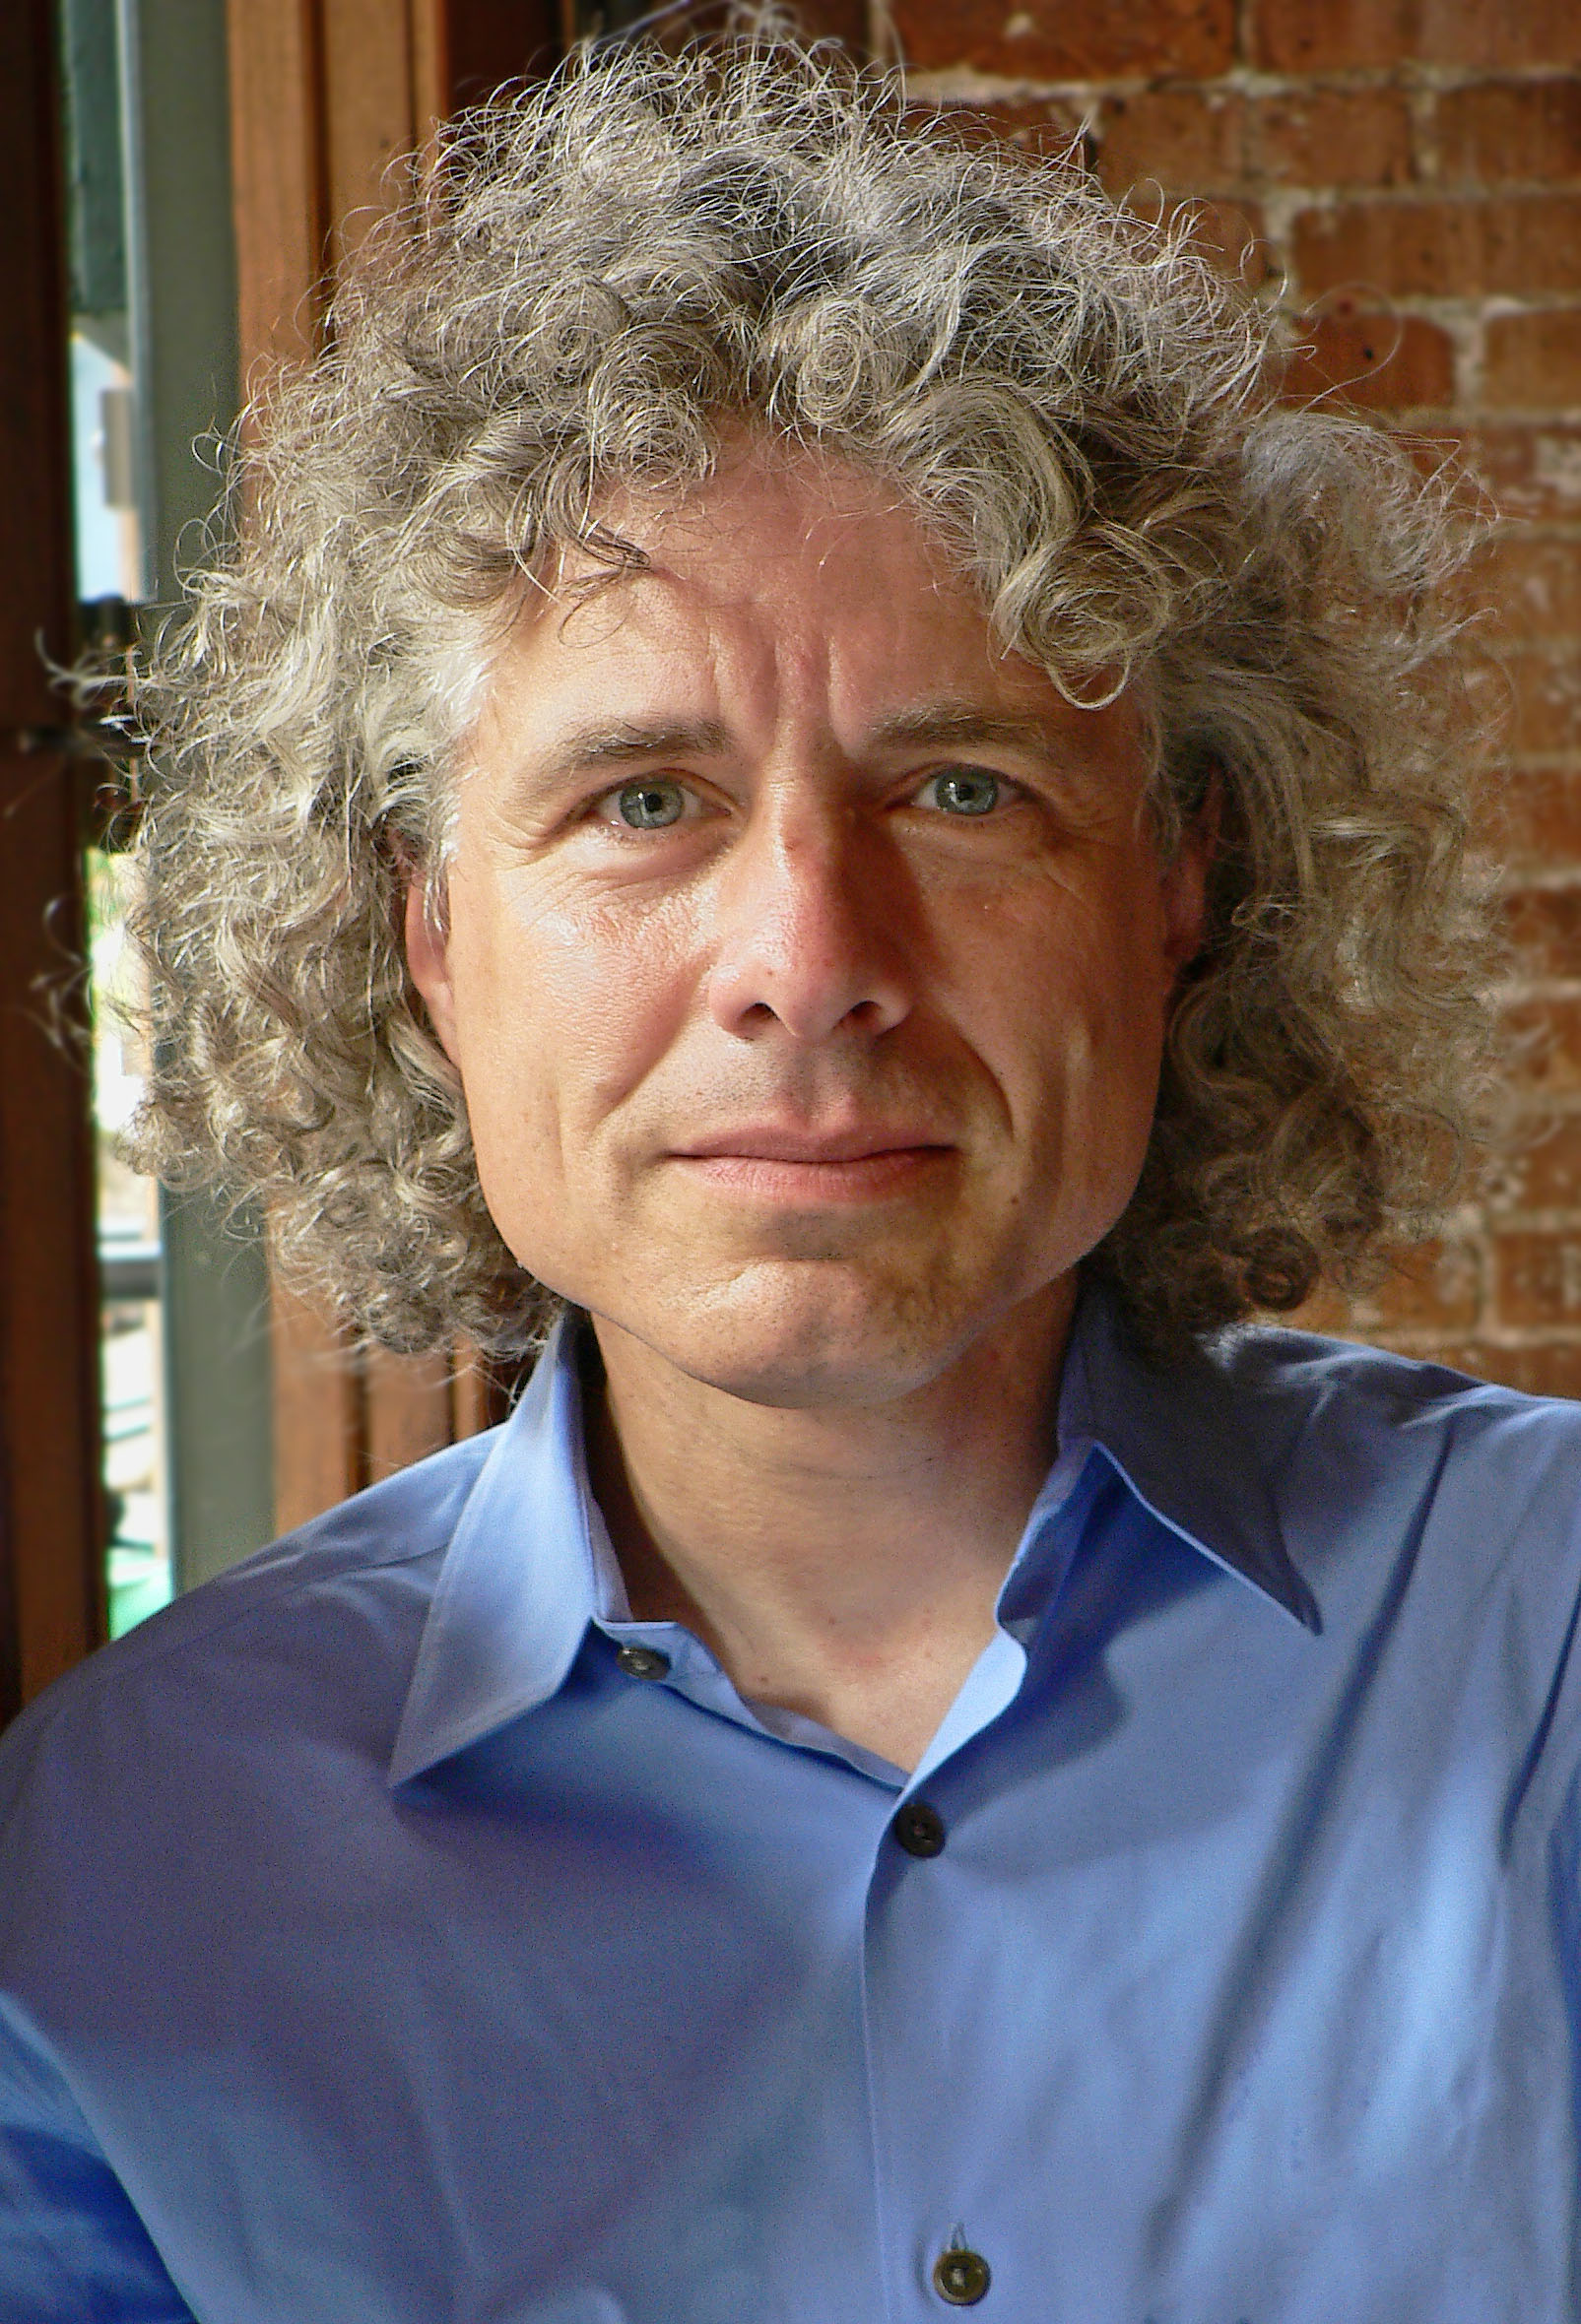 Steven Pinker's New Scientism